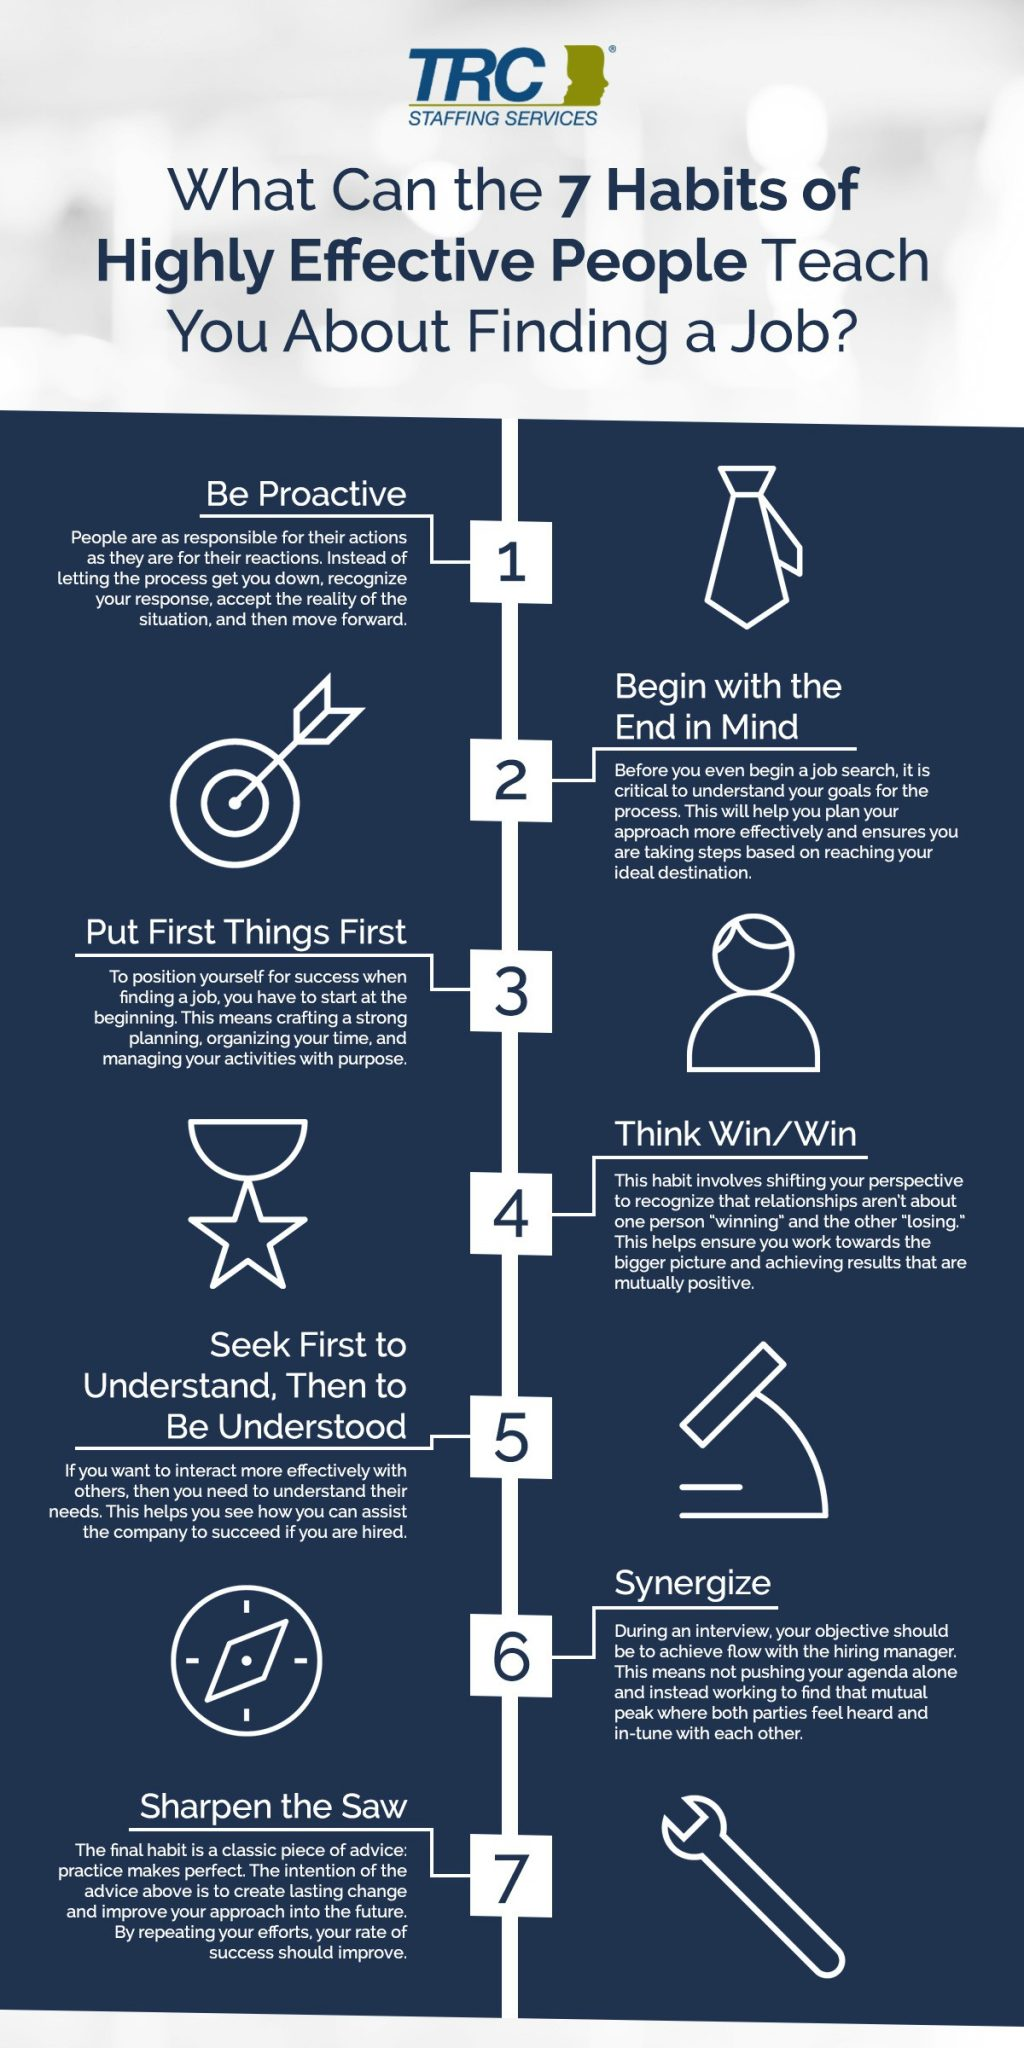 How Can The 7 Habits Of Highly Effective People Help You